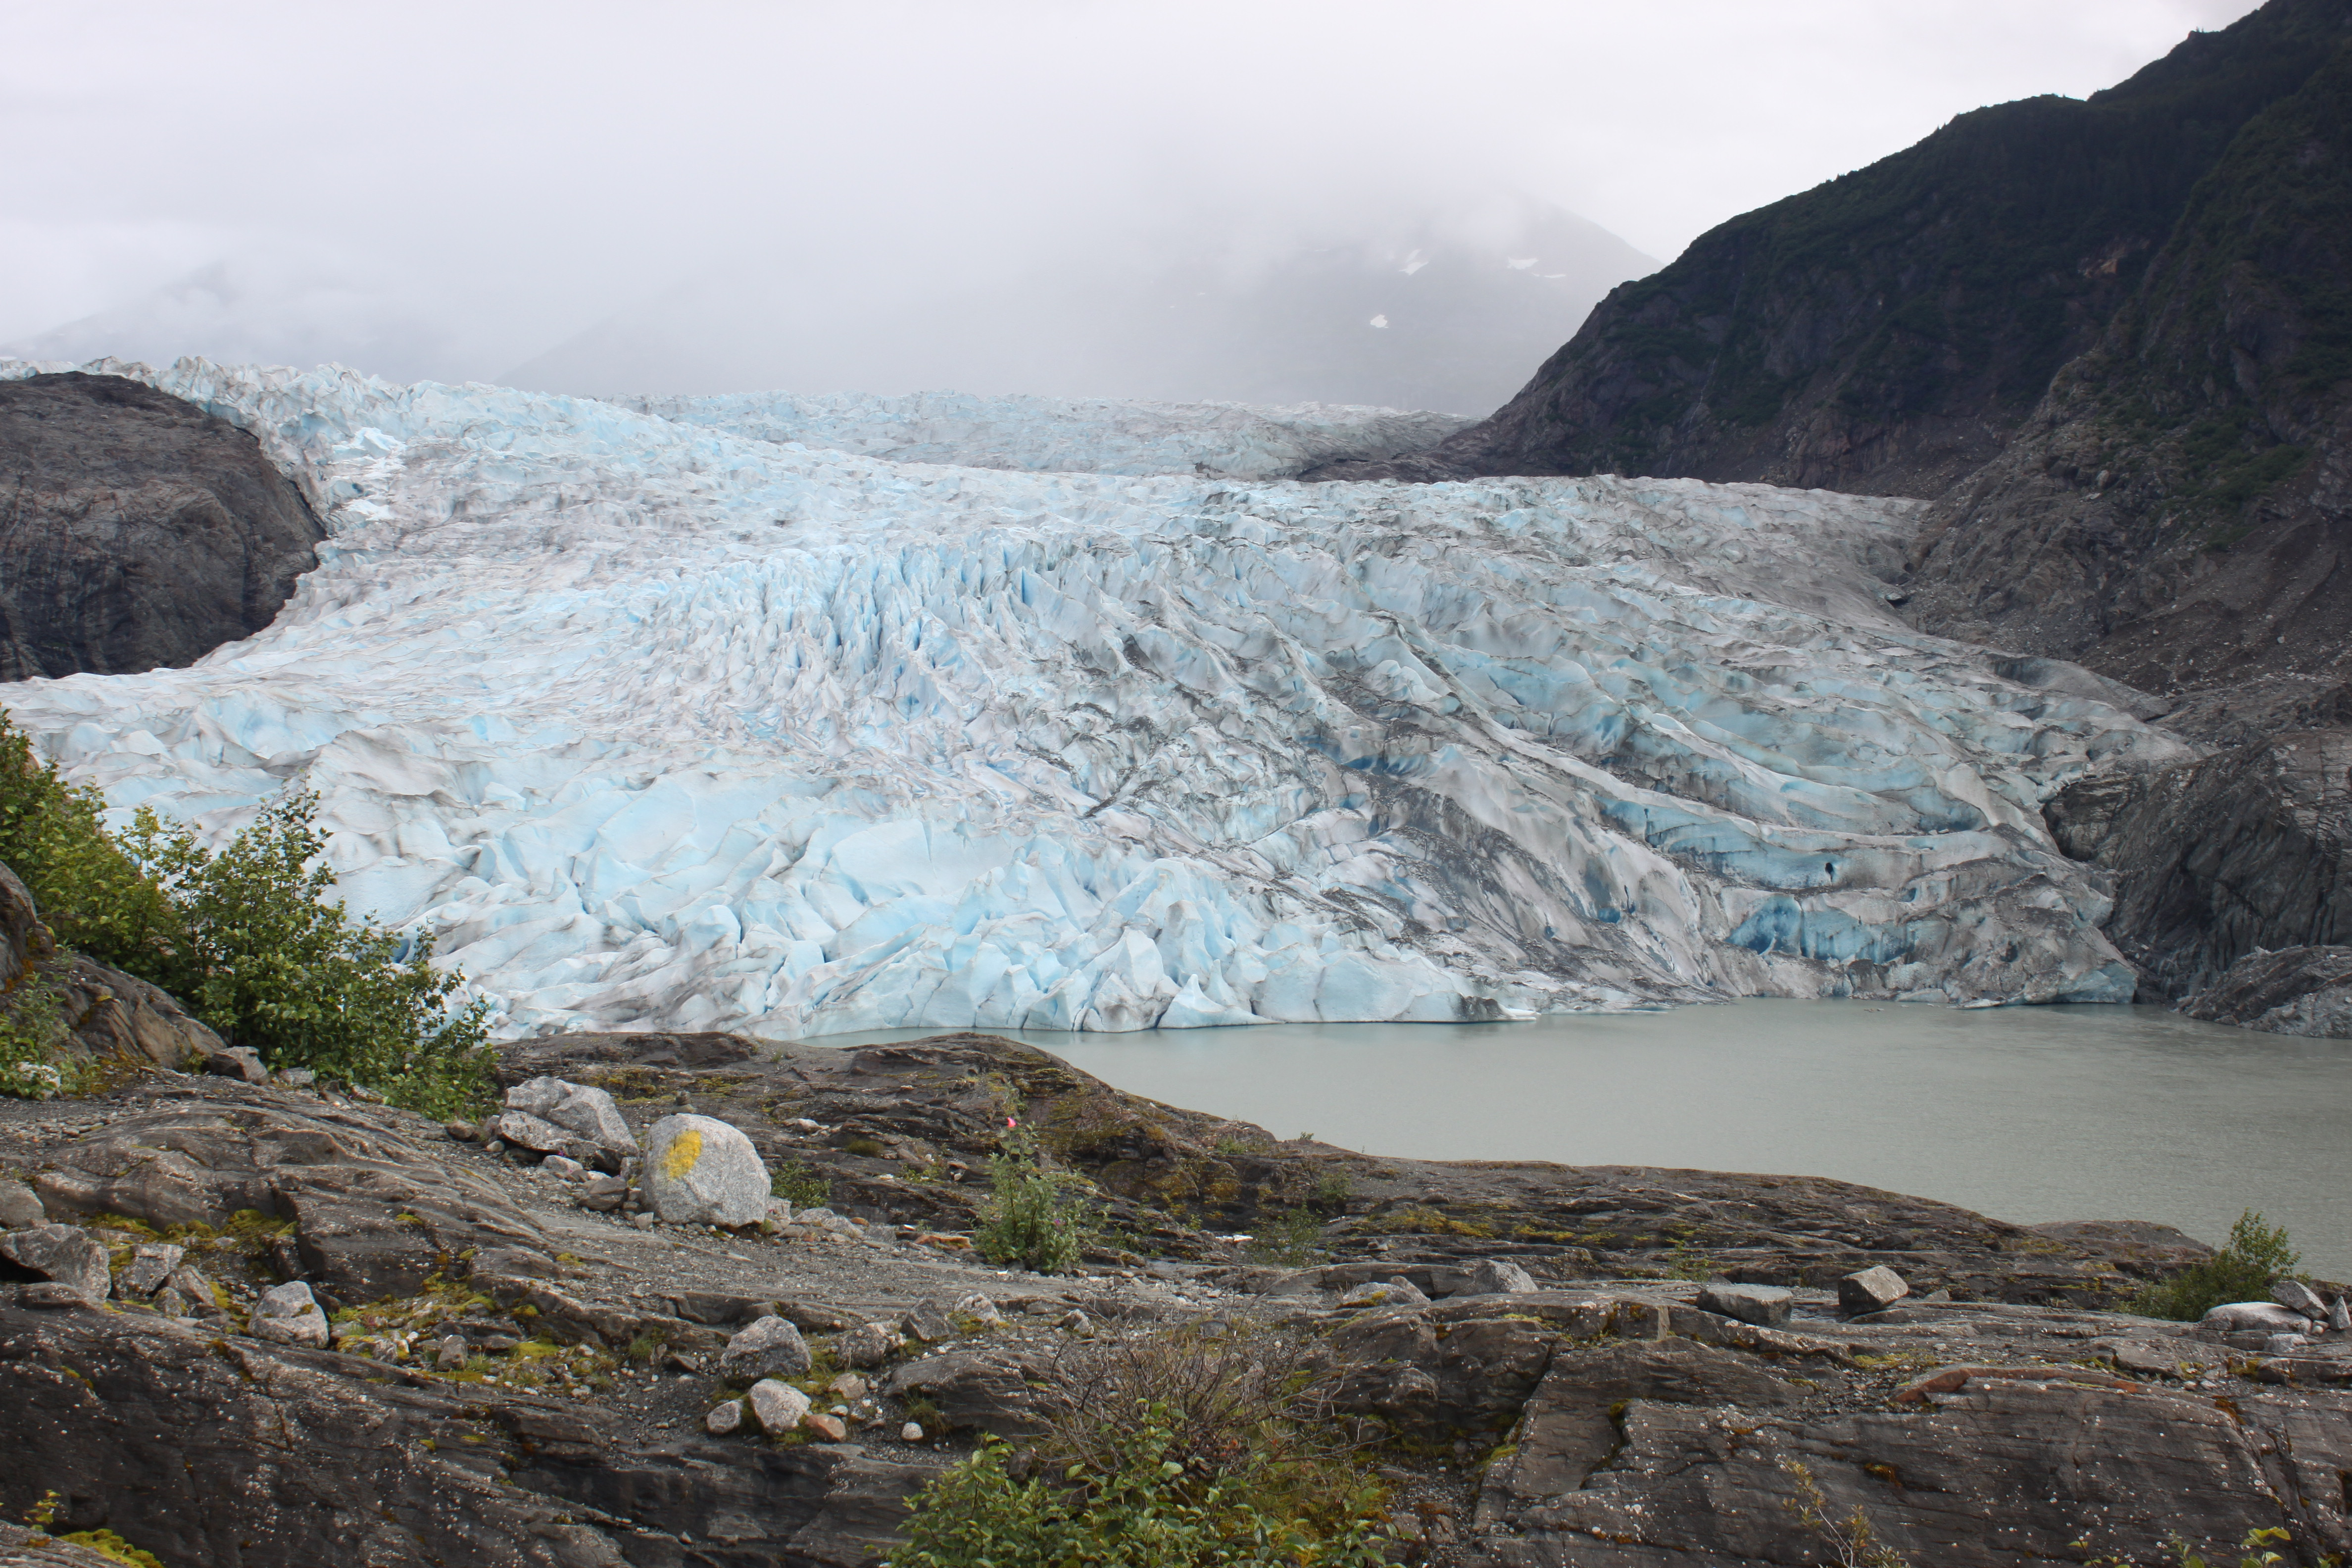 Six short plays on climate change will be read at the Mendenhall Glacier pavilion. (Photo by Lisa Phu/KTOO)